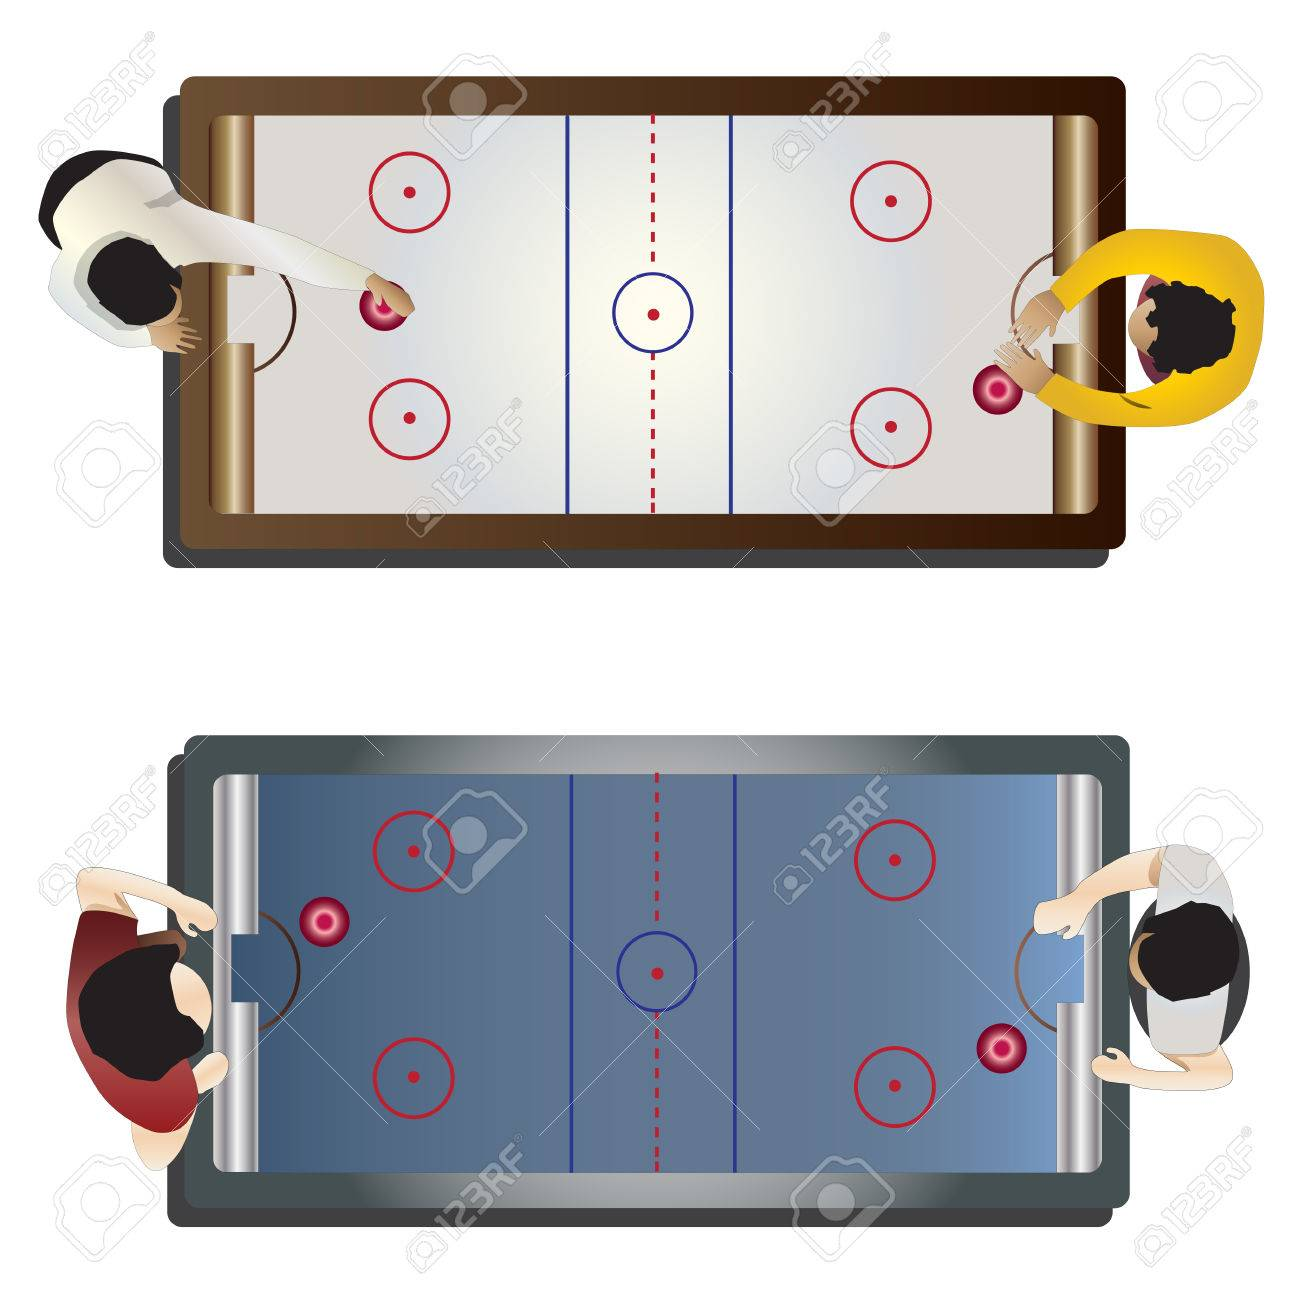 Etonnant Game Room, Hockey Table Top View For Interior , Vector Illustration Stock  Vector   46074419